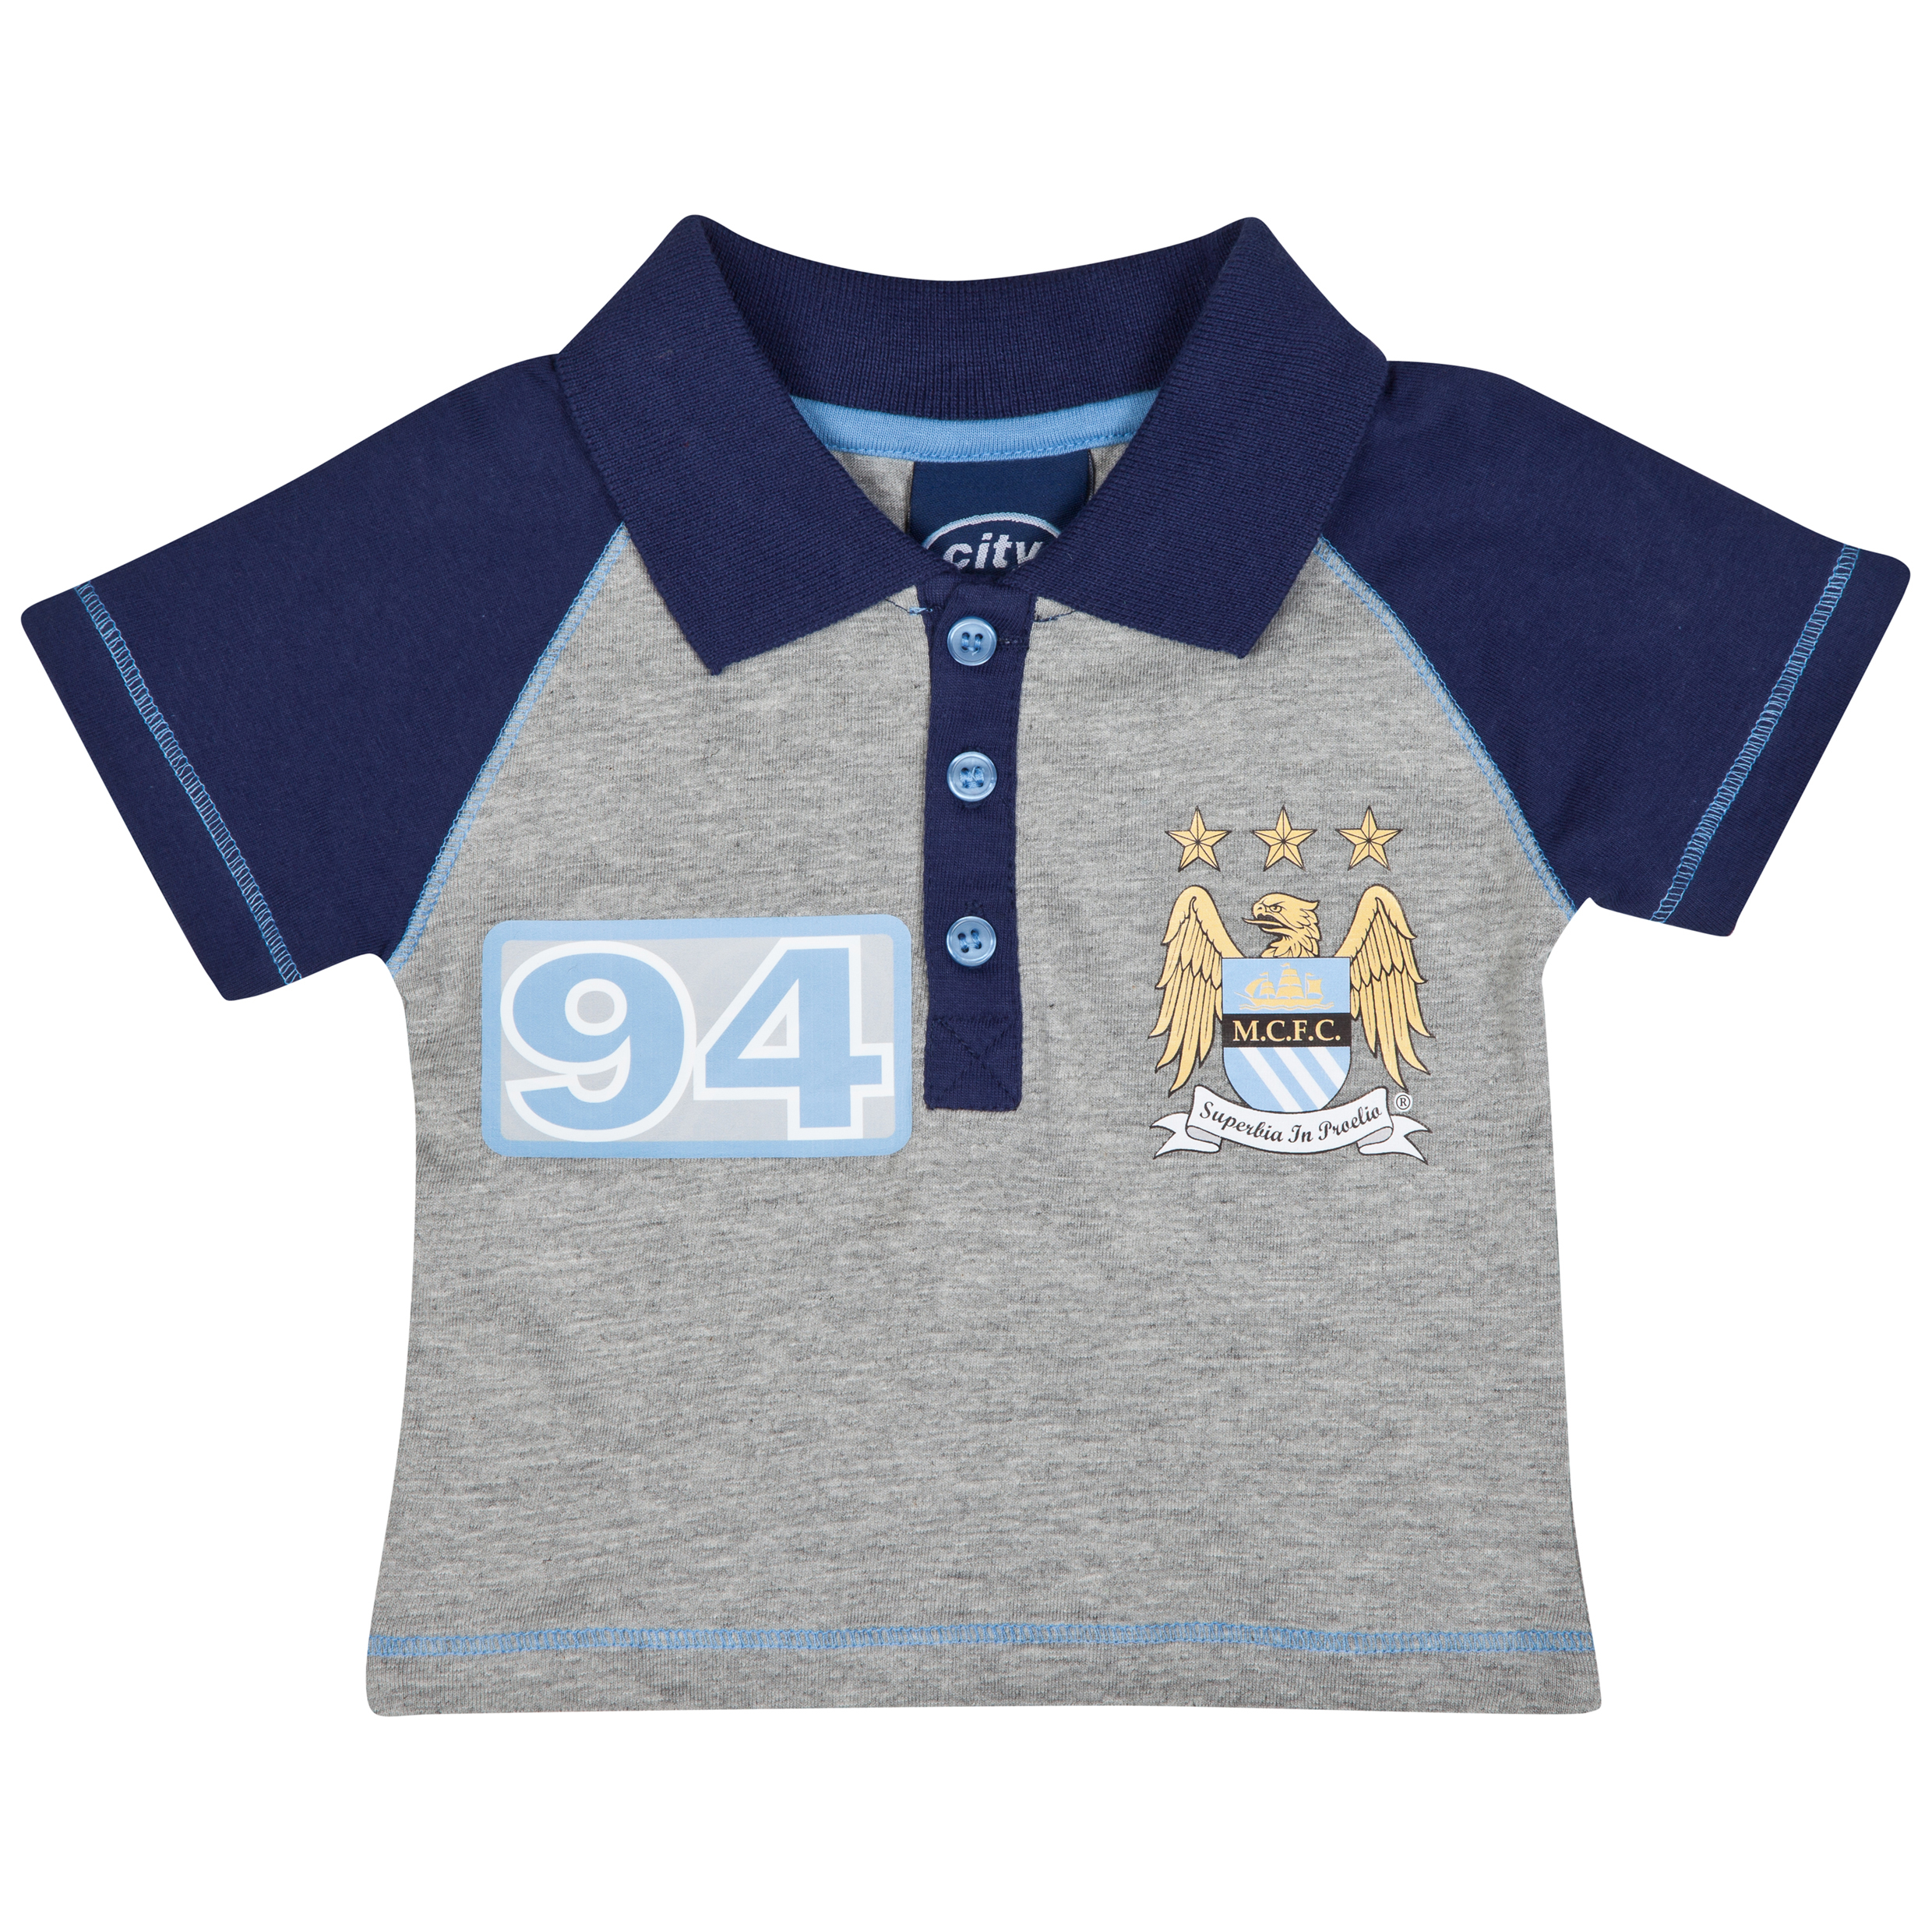 Manchester City Raglan Polo Top - Navy/Sky - Baby